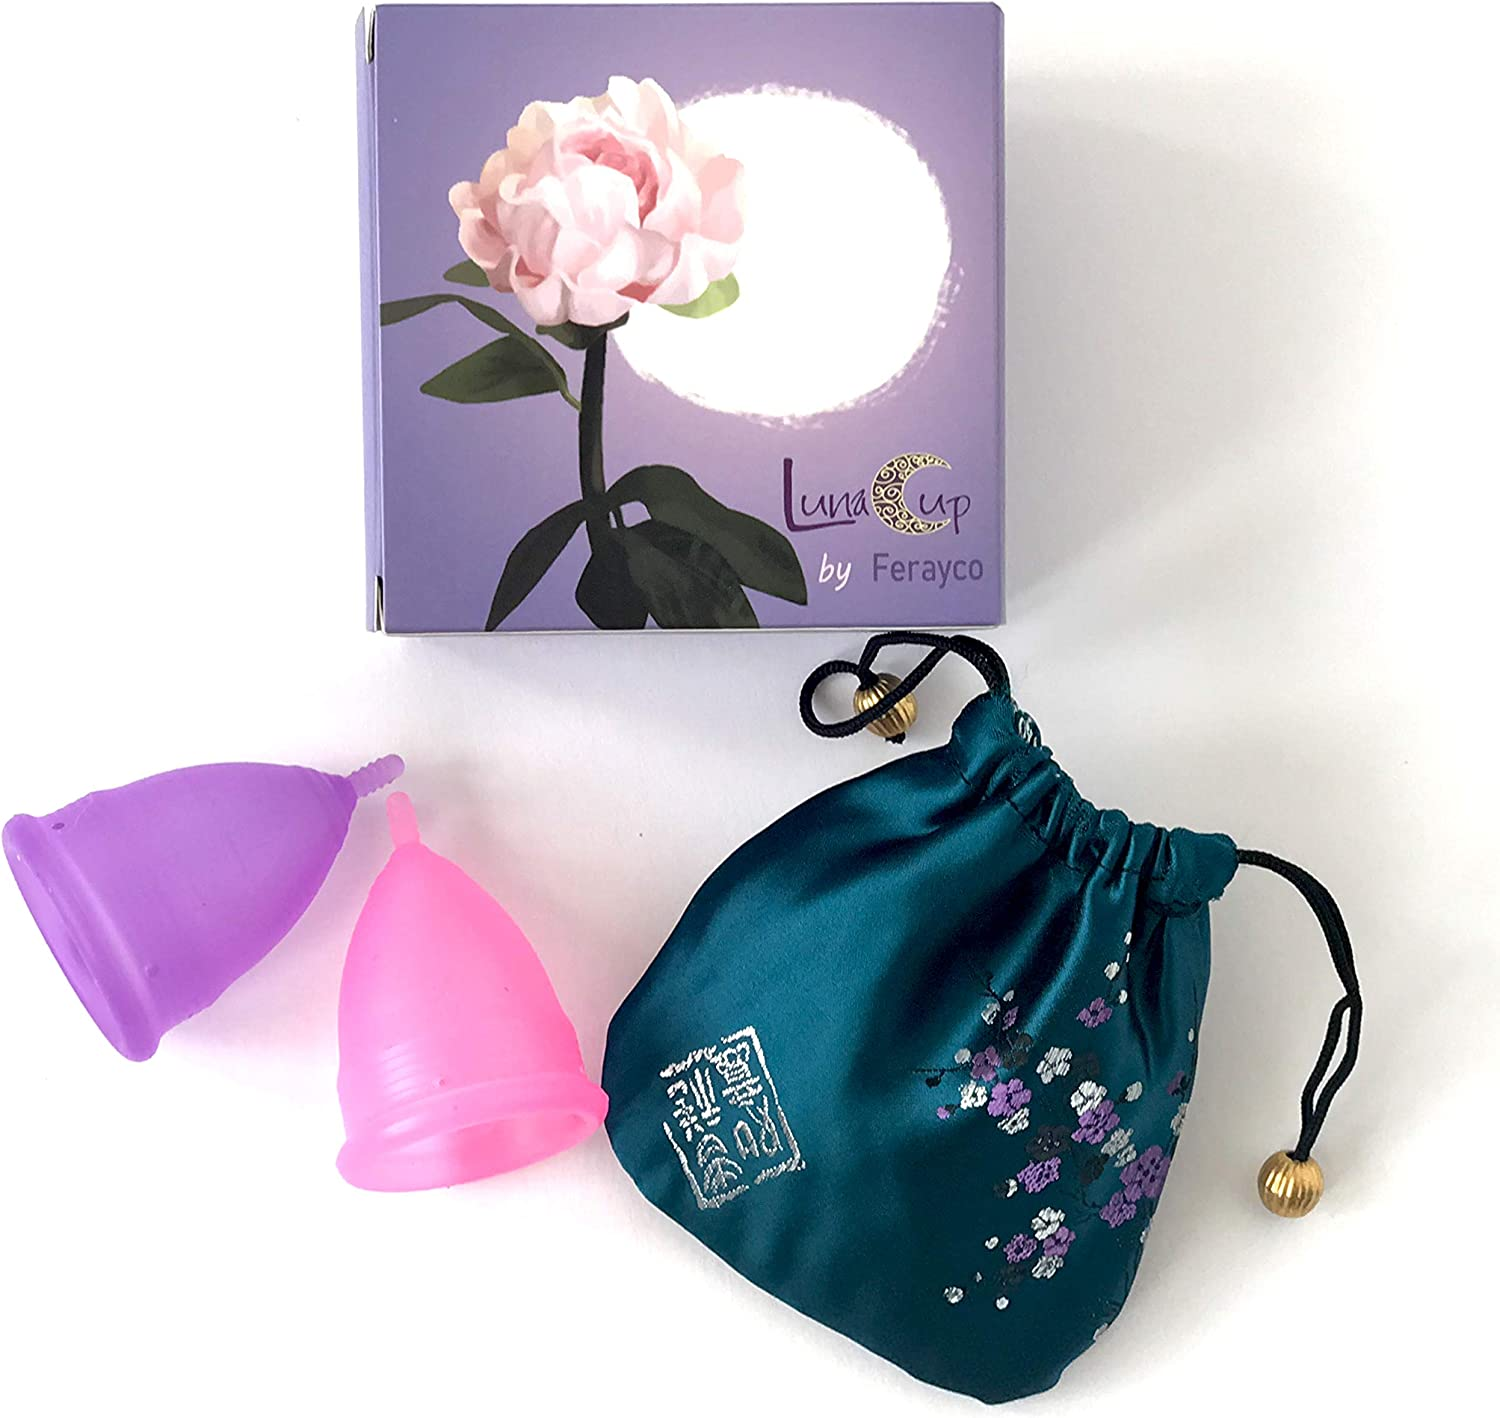 Luna Cup Menstrual Cups 2 Small Period Cups and 1 Silky Bag (2 Small Cups)